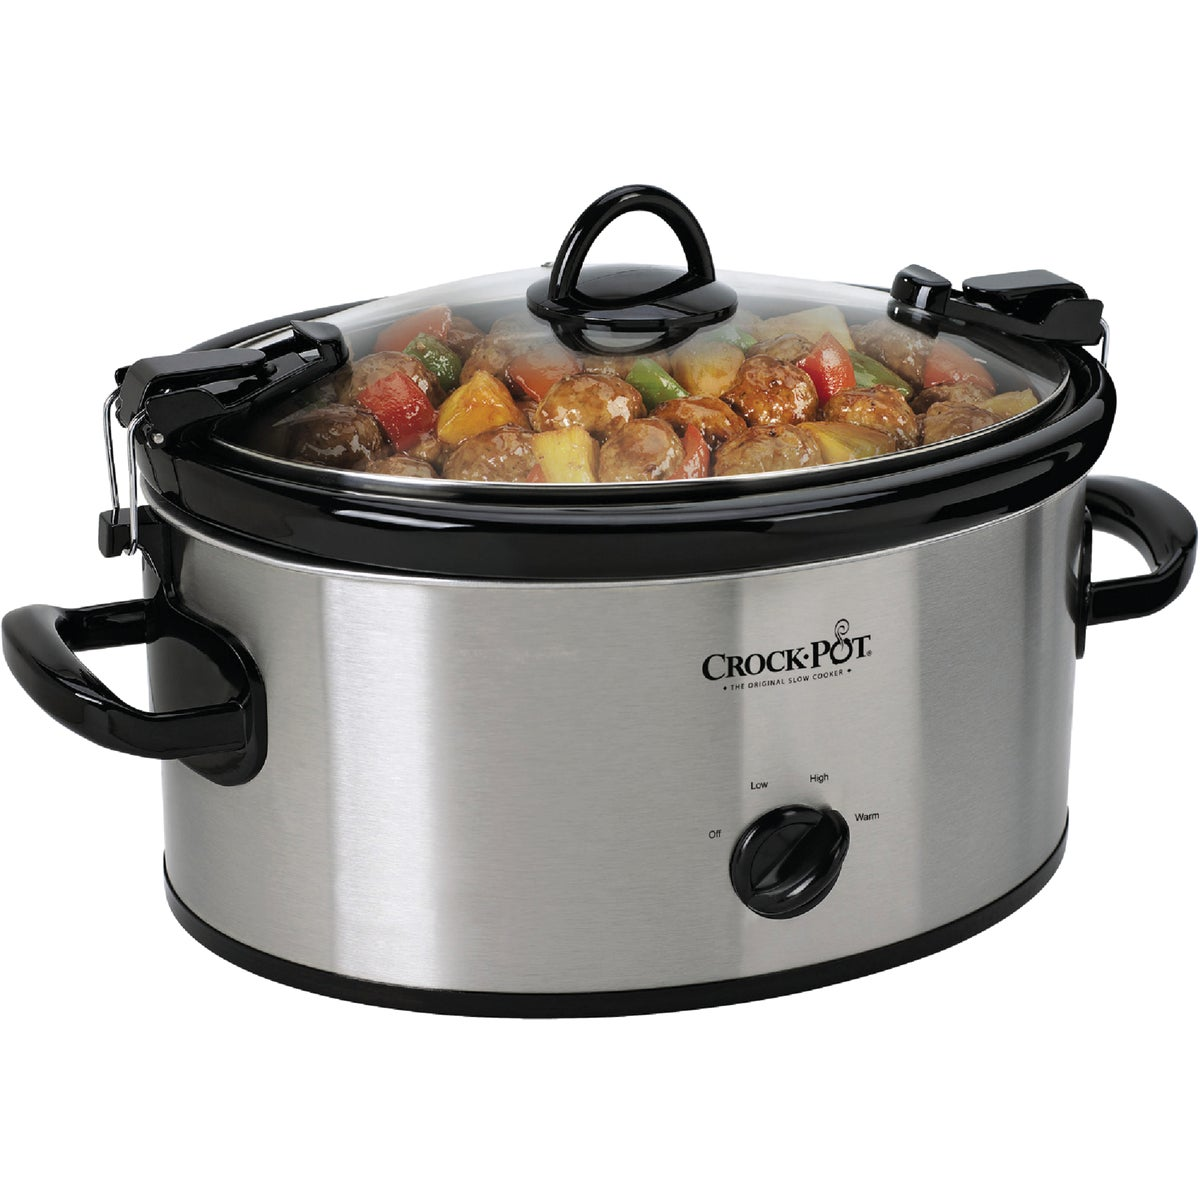 SS 6QT OVAL SLOW COOKER - SCCPVL600-S by Jarden Cs